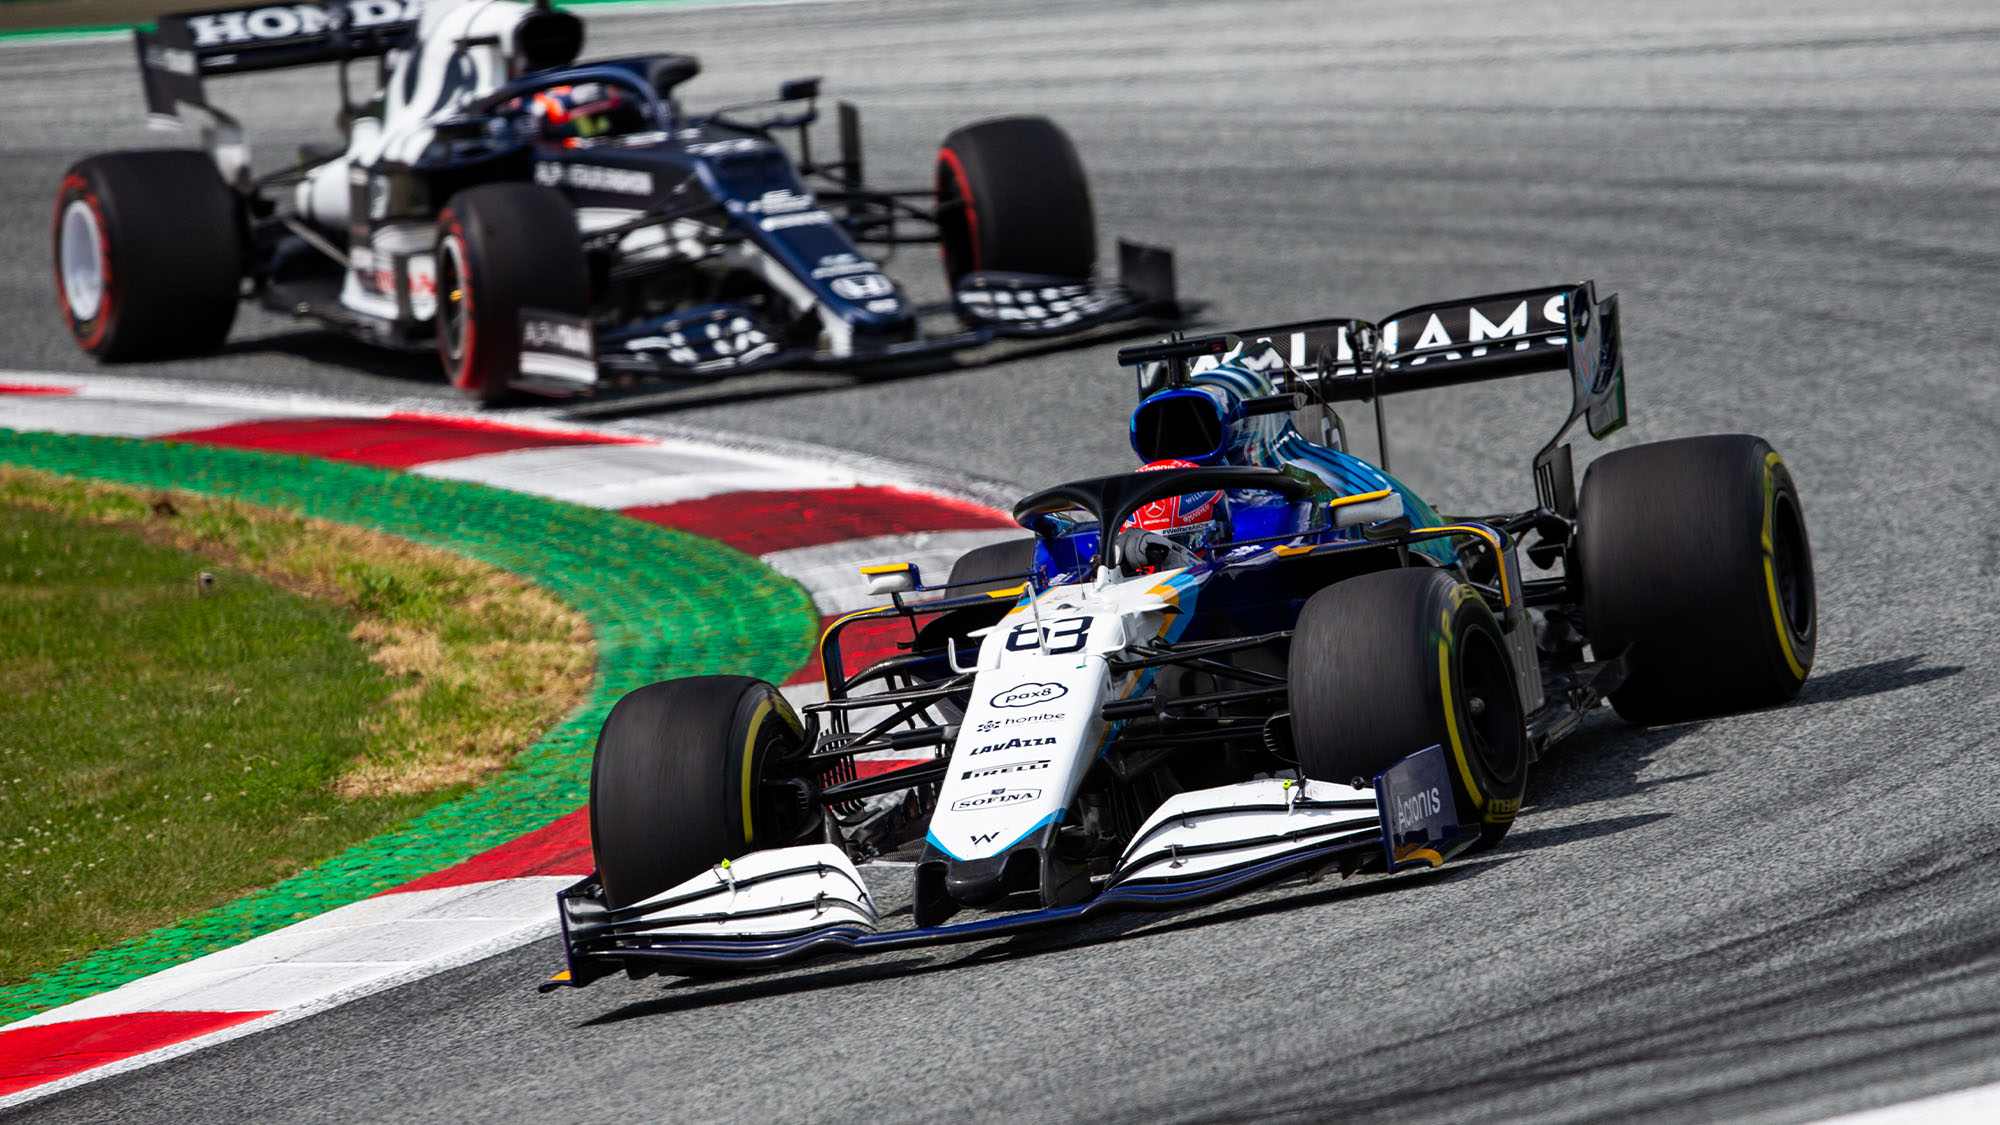 63 RUSSELL George (gbr), Williams Racing F1 FW43B, action during the Formula 1 Grosser Preis Der Steiermark 2021, 2021 Styrian Grand Prix, 8th round of the 2021 FIA Formula One World Championship from June 25 to 27, 2021 on the Red Bull Ring , in Spielberg, Austria - Photo Joao Filipe / DPPI